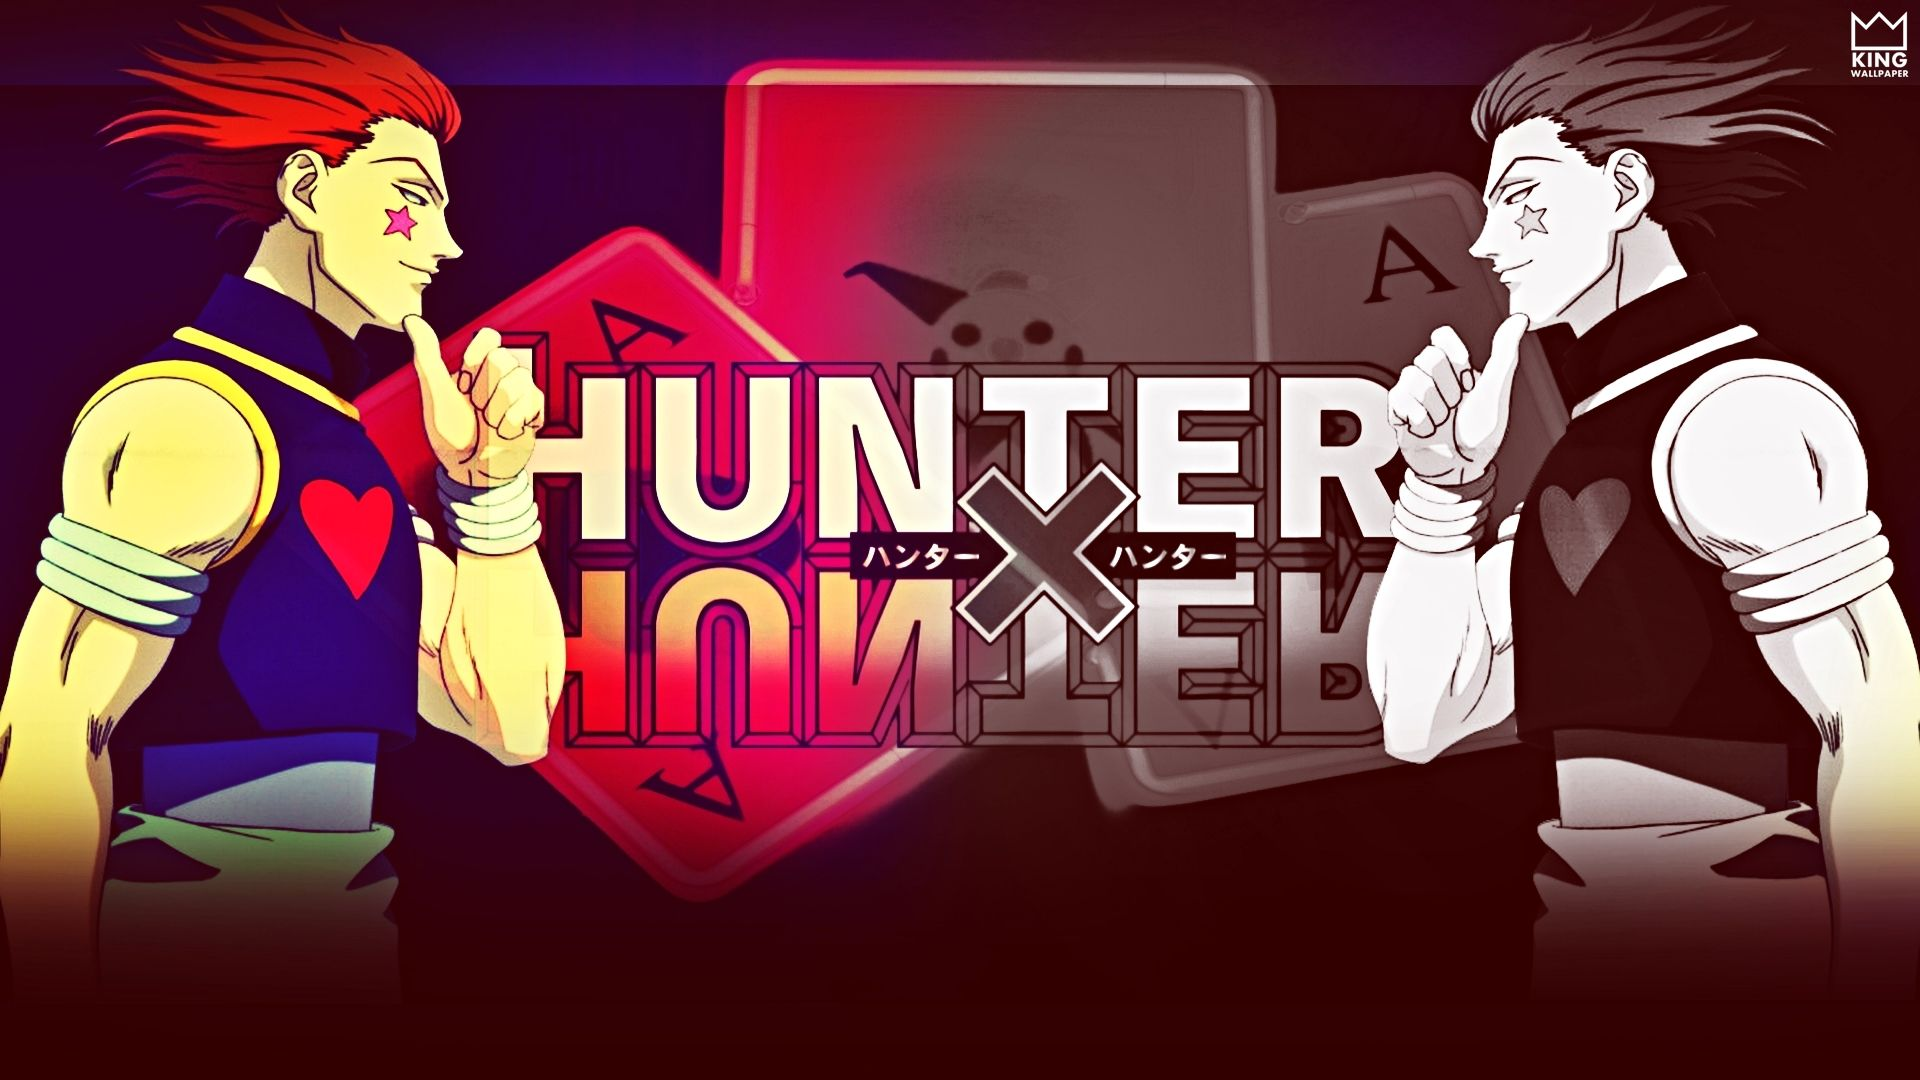 50+] Hunter X Hunter Hisoka Wallpapers